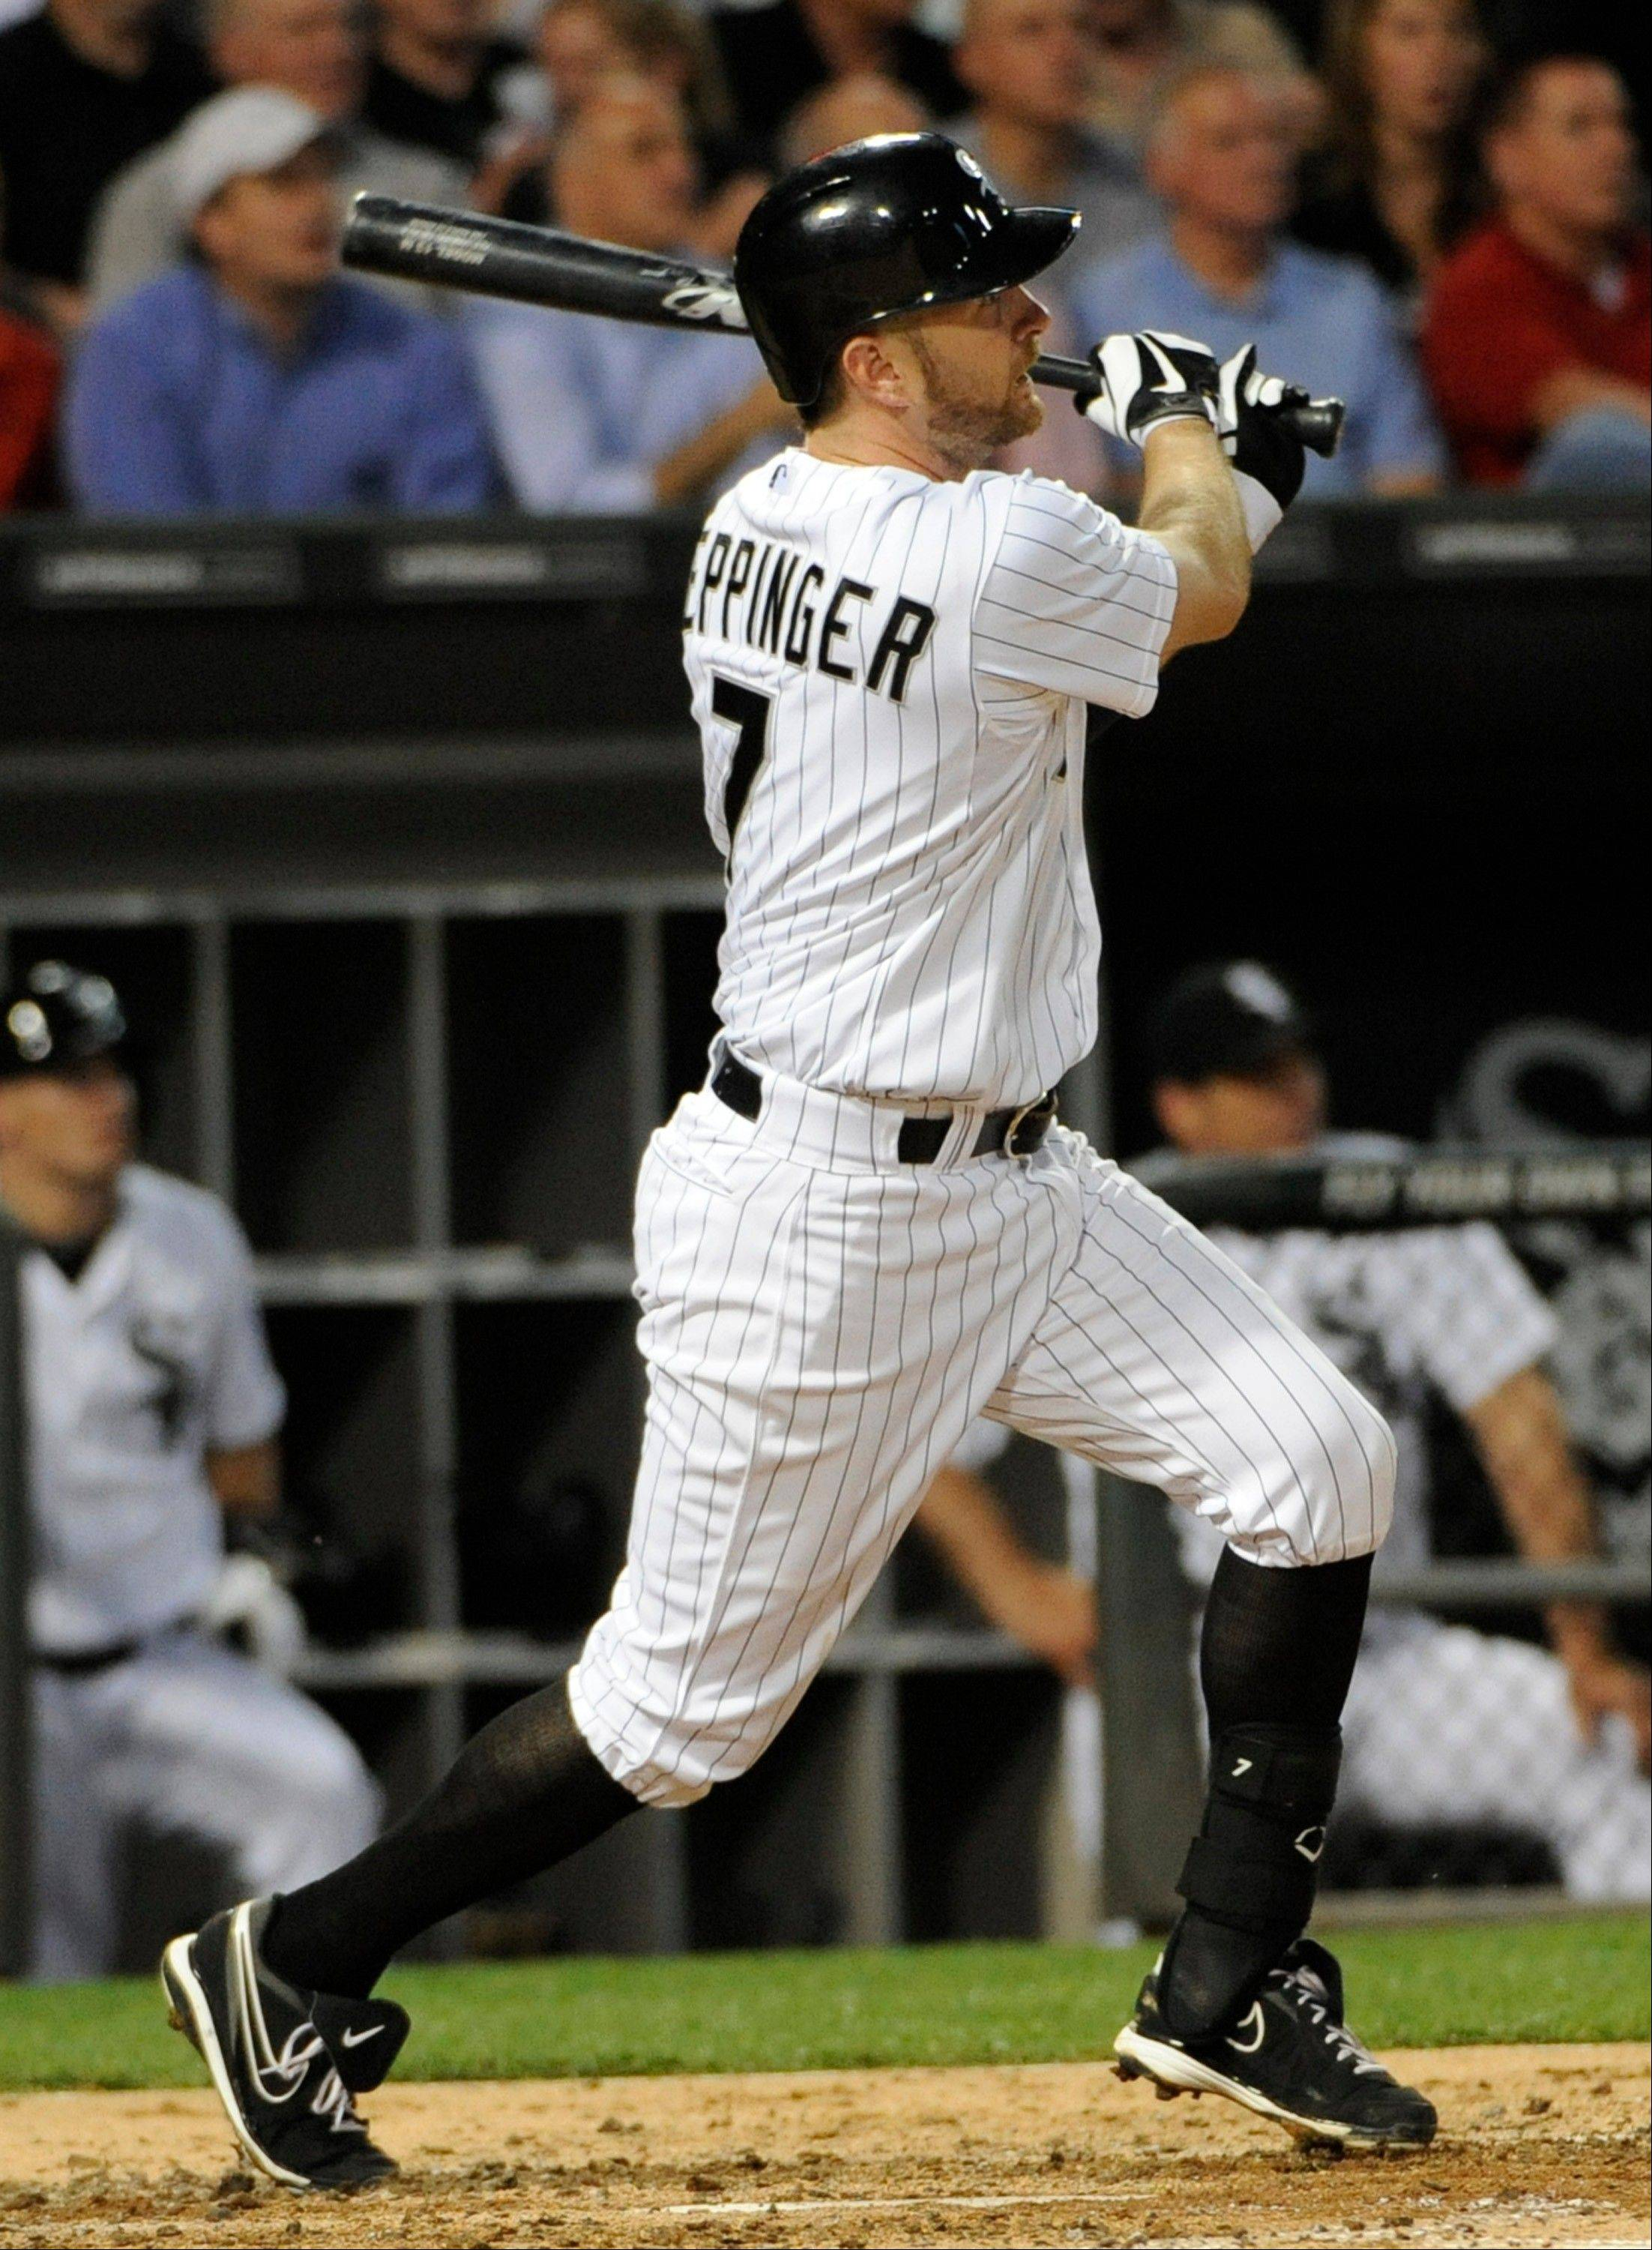 With just a .283 on-base percentage, Jeff Keppinger ranked 102nd out of 105 AL hitters with 400 or more at-bats.